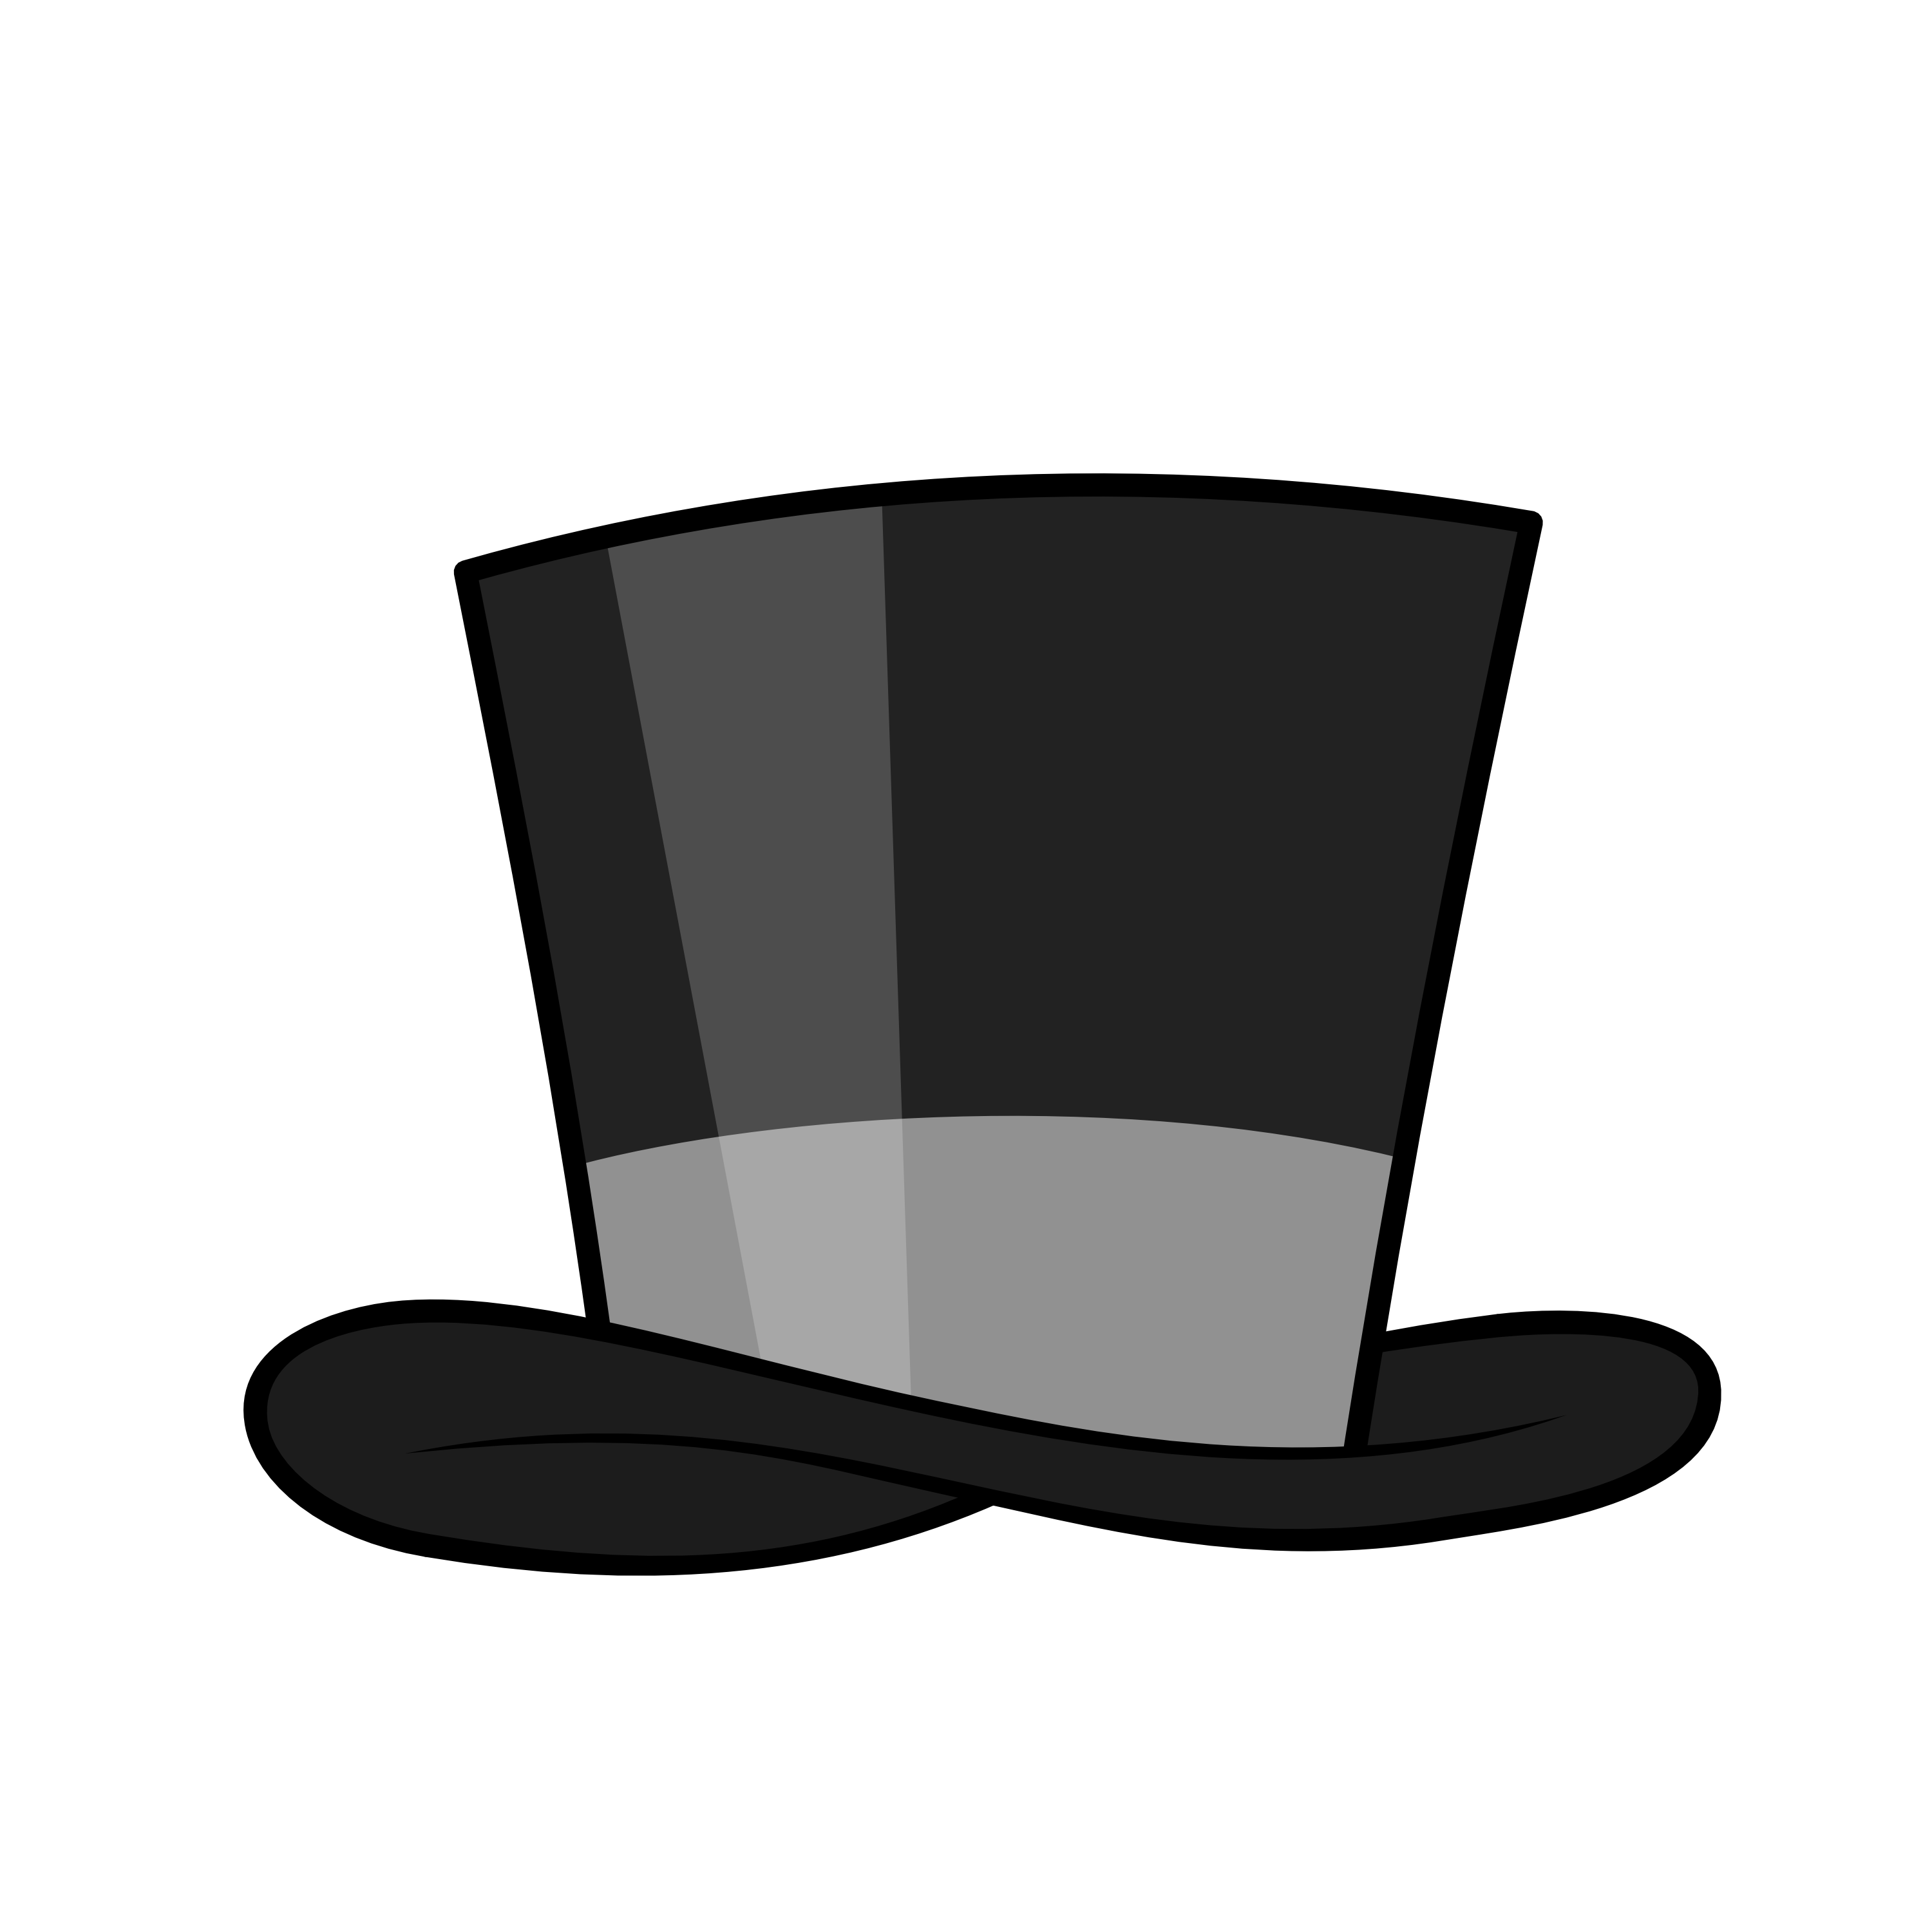 3000x3000 Top Hat Clipart